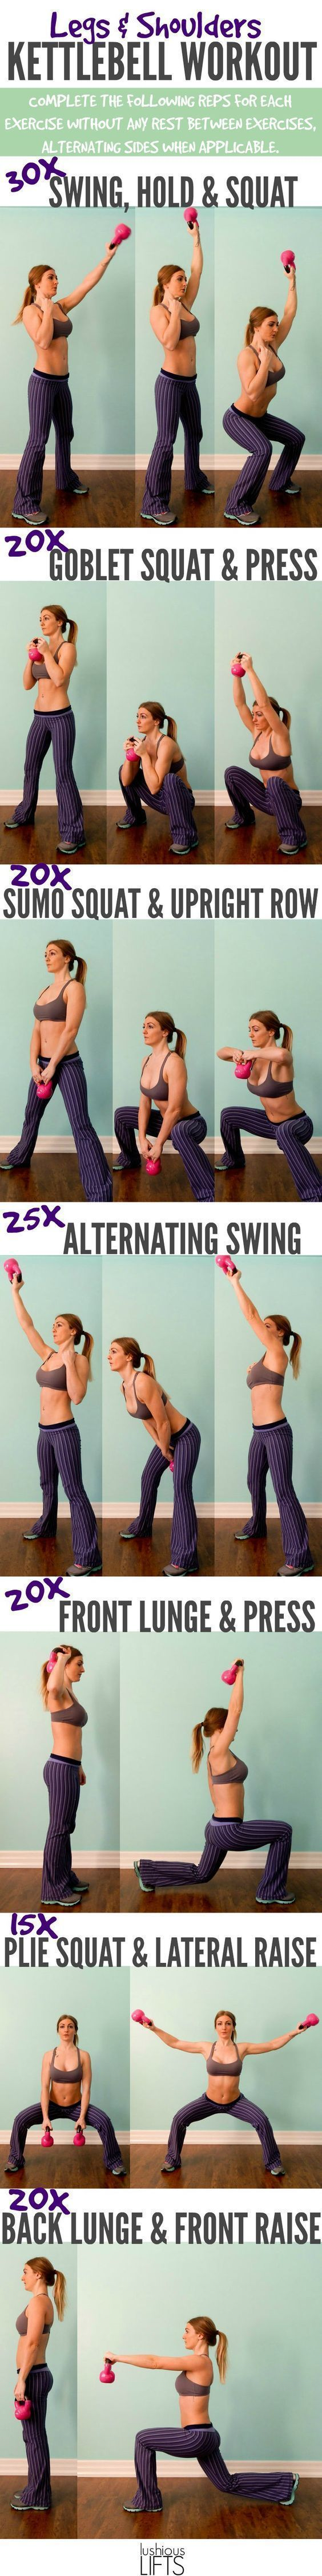 Legs and Shoulders Kettlebell Workout | Posted By: AdvancedWeightLossTips.com